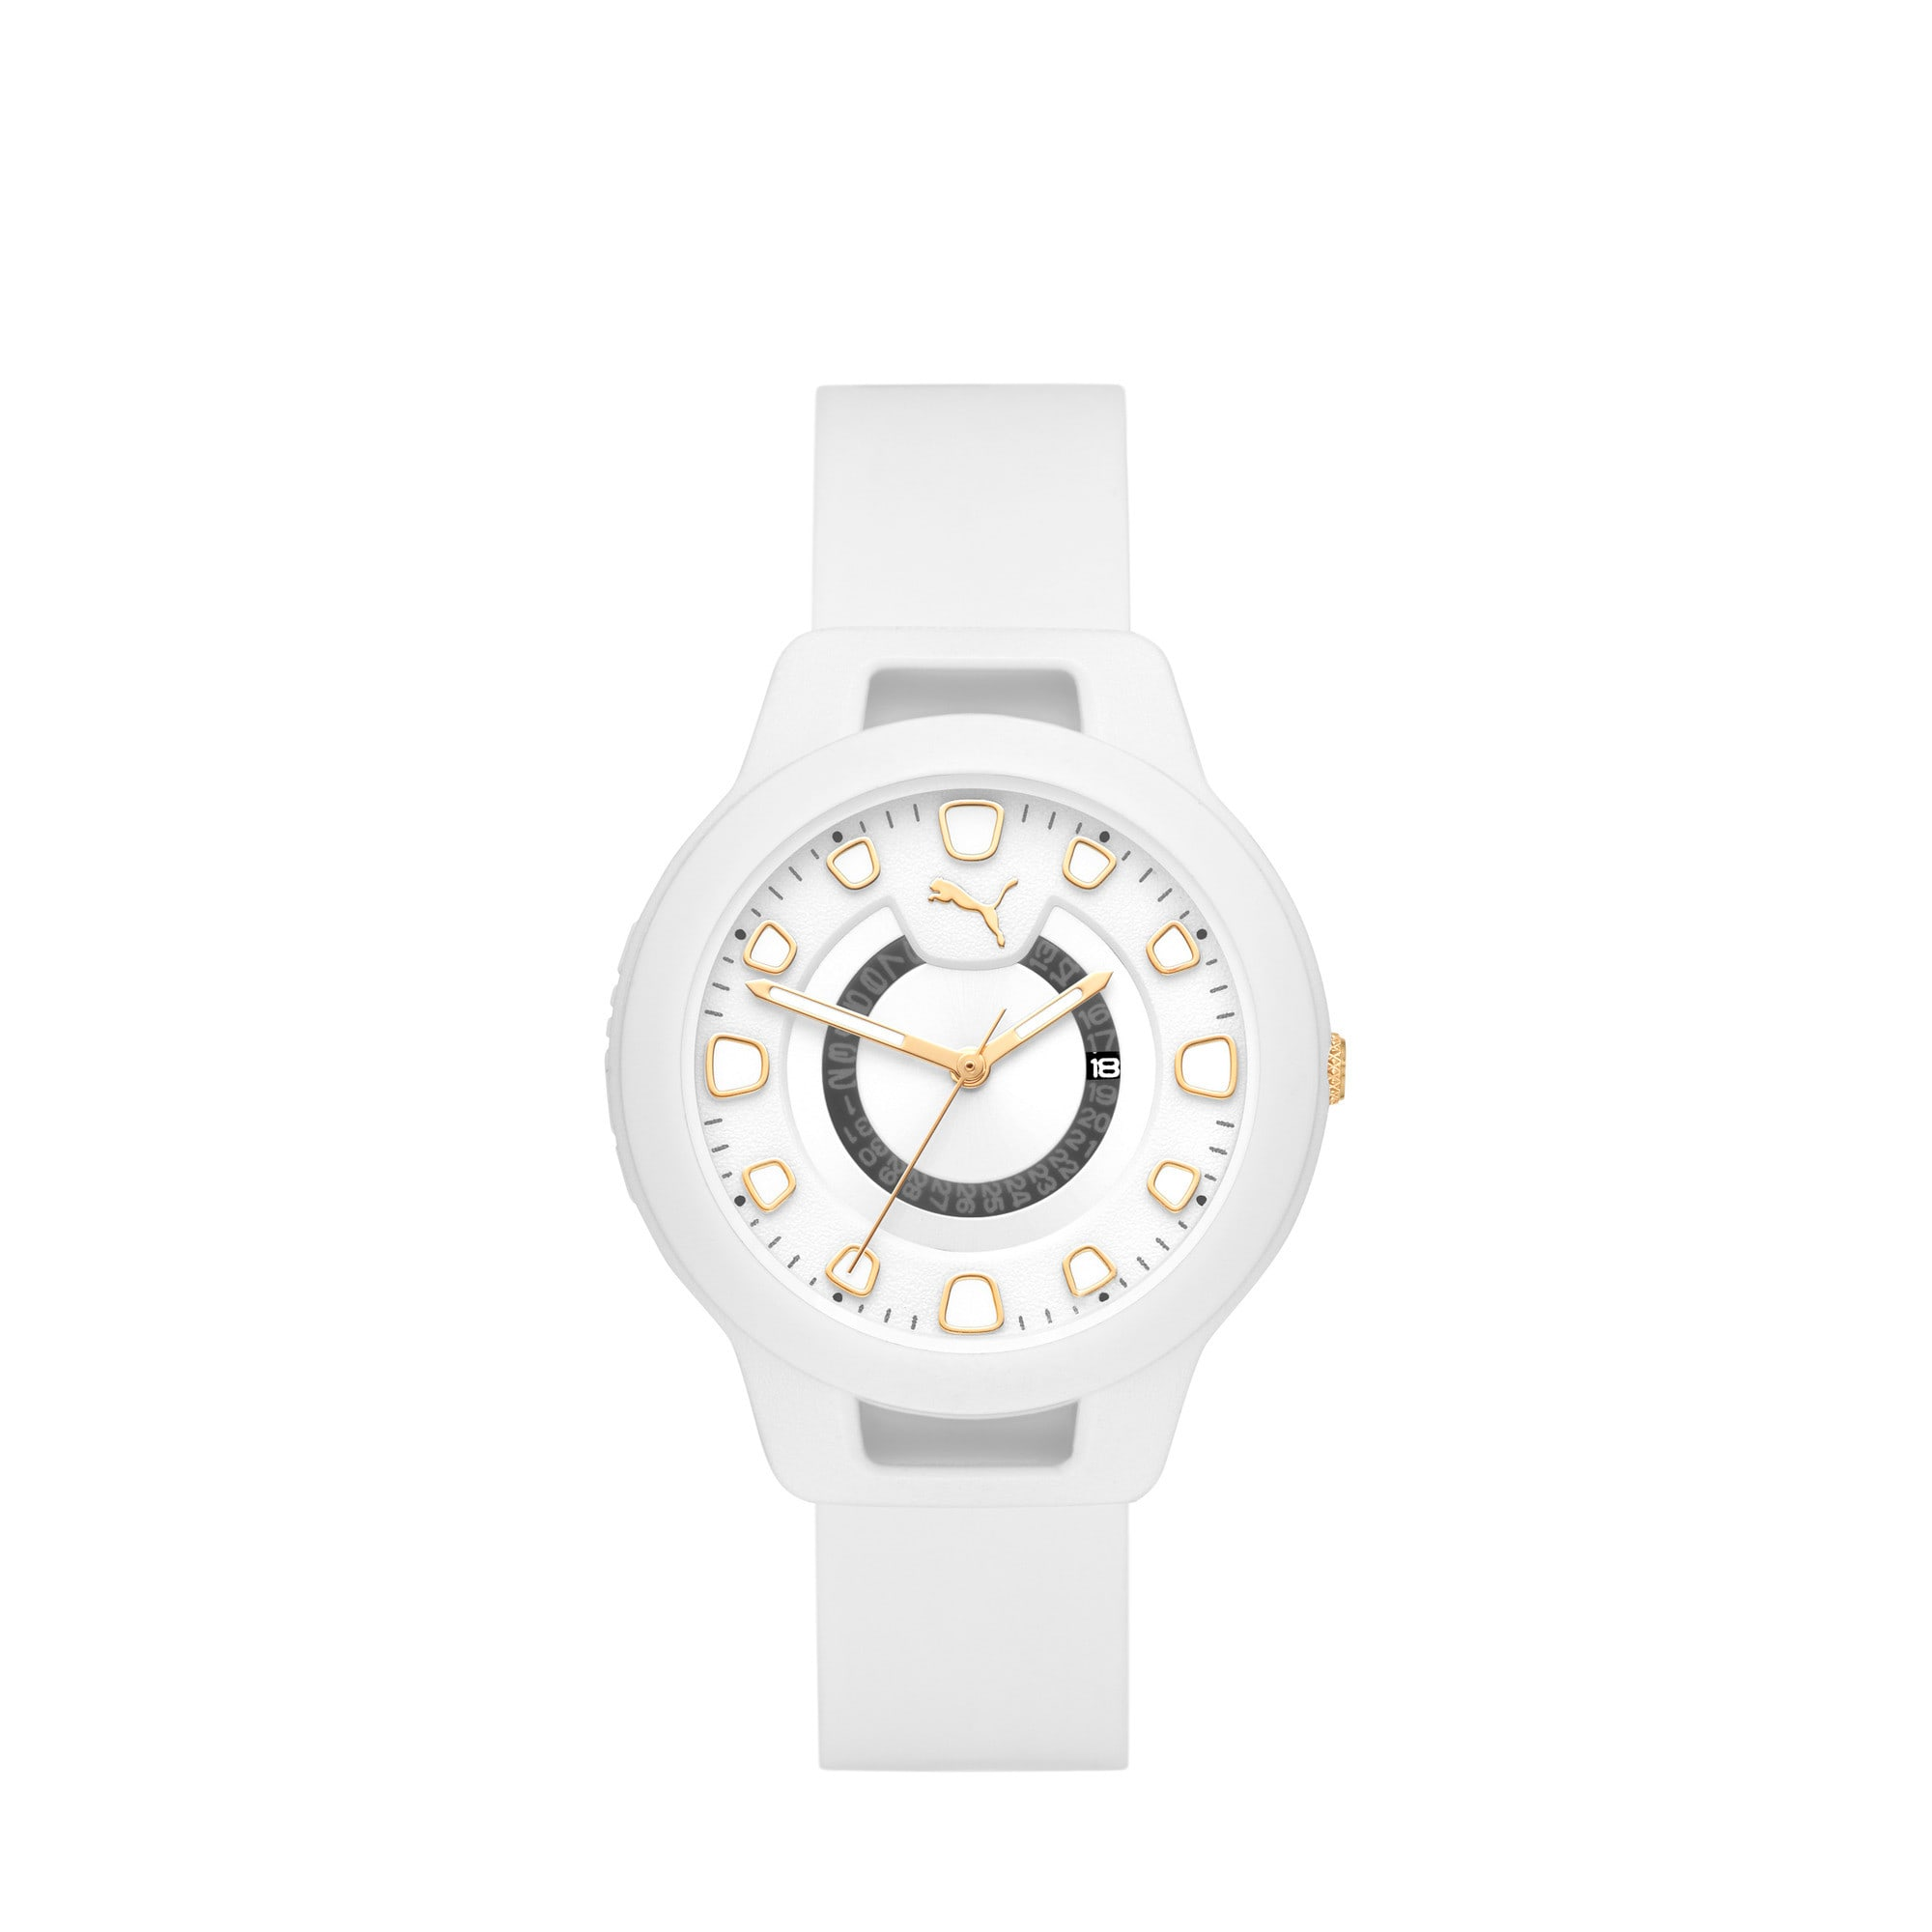 Thumbnail 1 of Reset Silicone V1 Women's Watch, White/White, medium